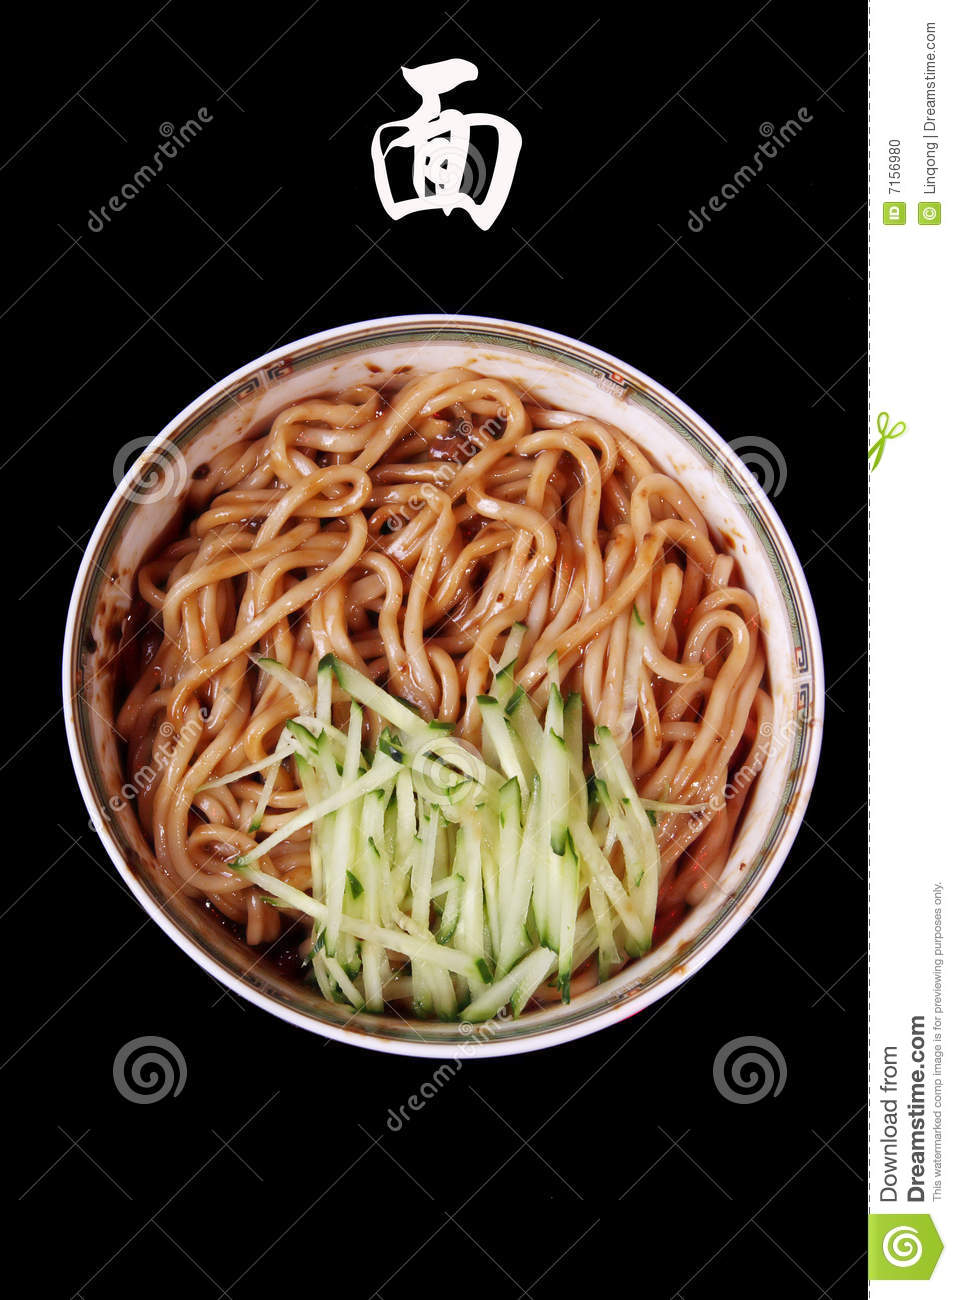 Pictures of Chinese Noodles Using Ramen Noodles